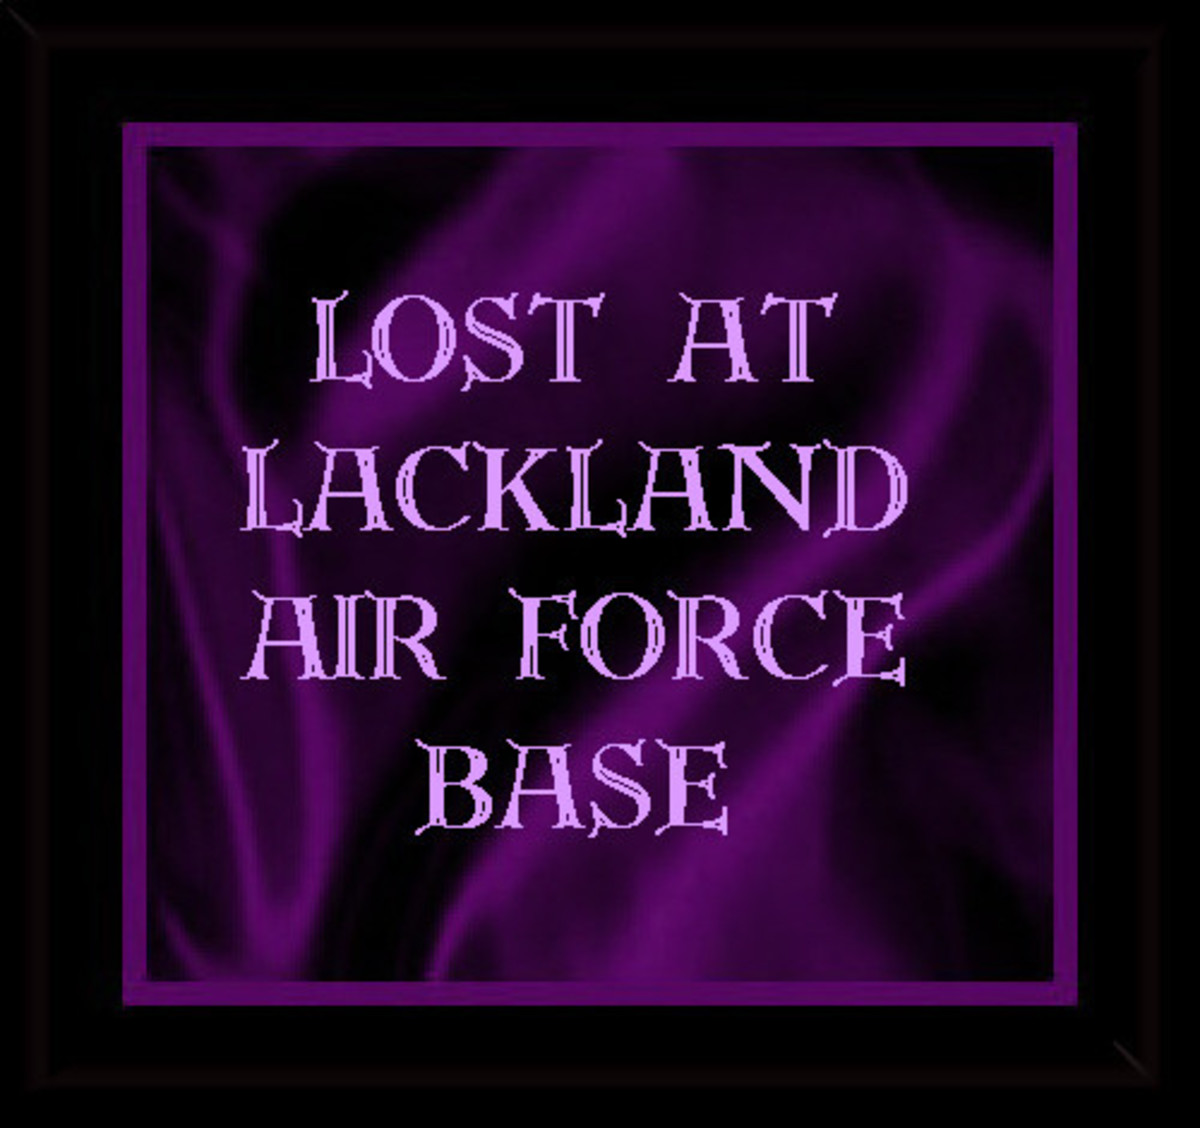 Lackland Air Force Base is a HUGE place - and we were lost!